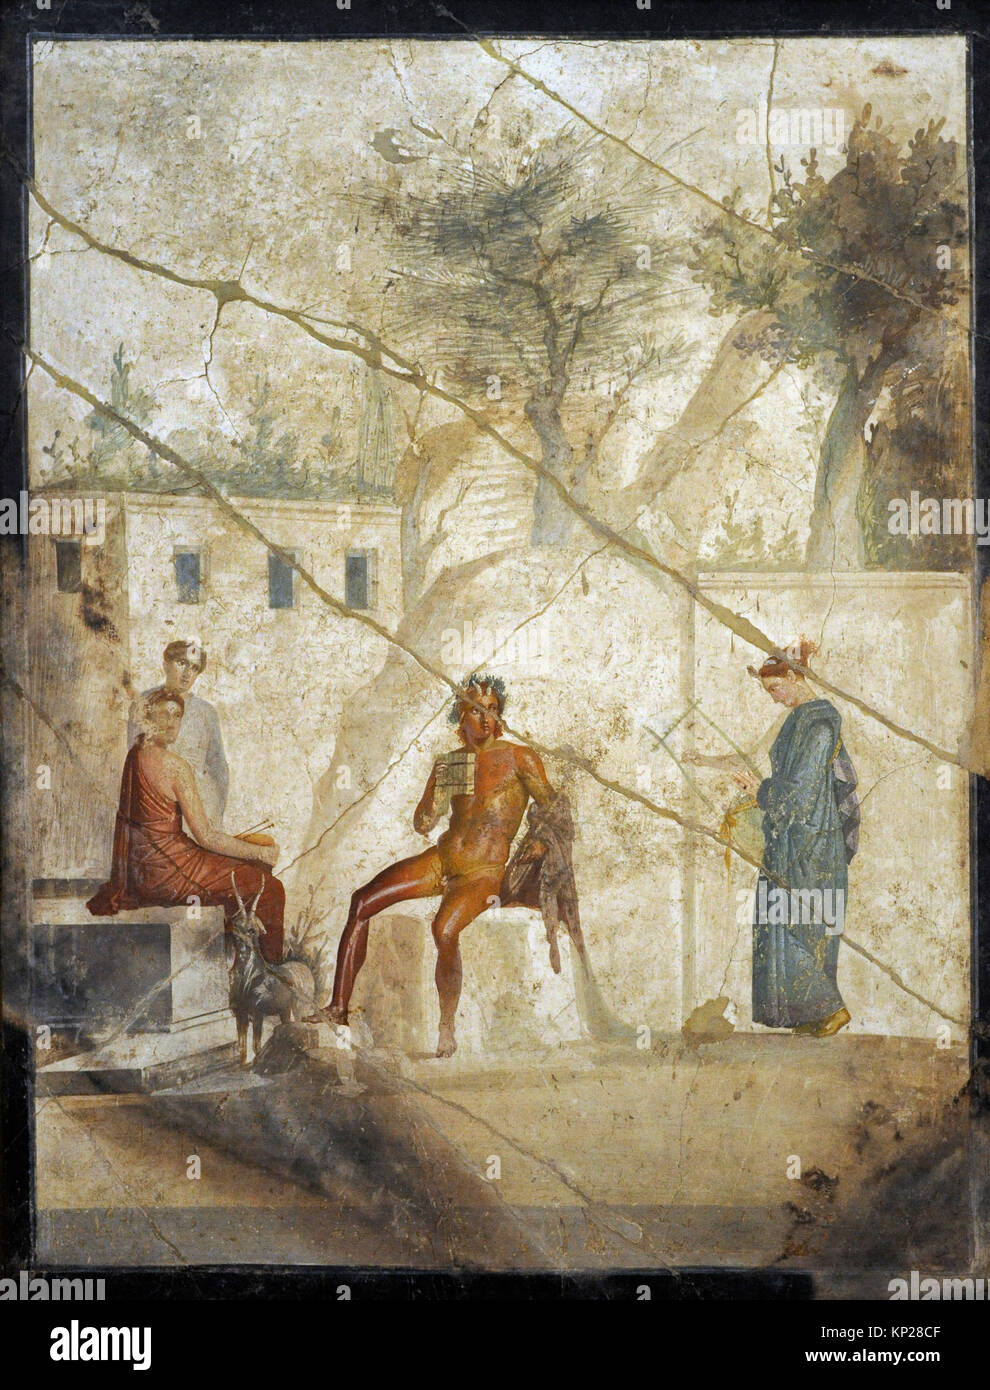 Roman fresco depicting Pan playing the double flute with a nymph playing the lyre and two other nymphs accompanying - Stock Image